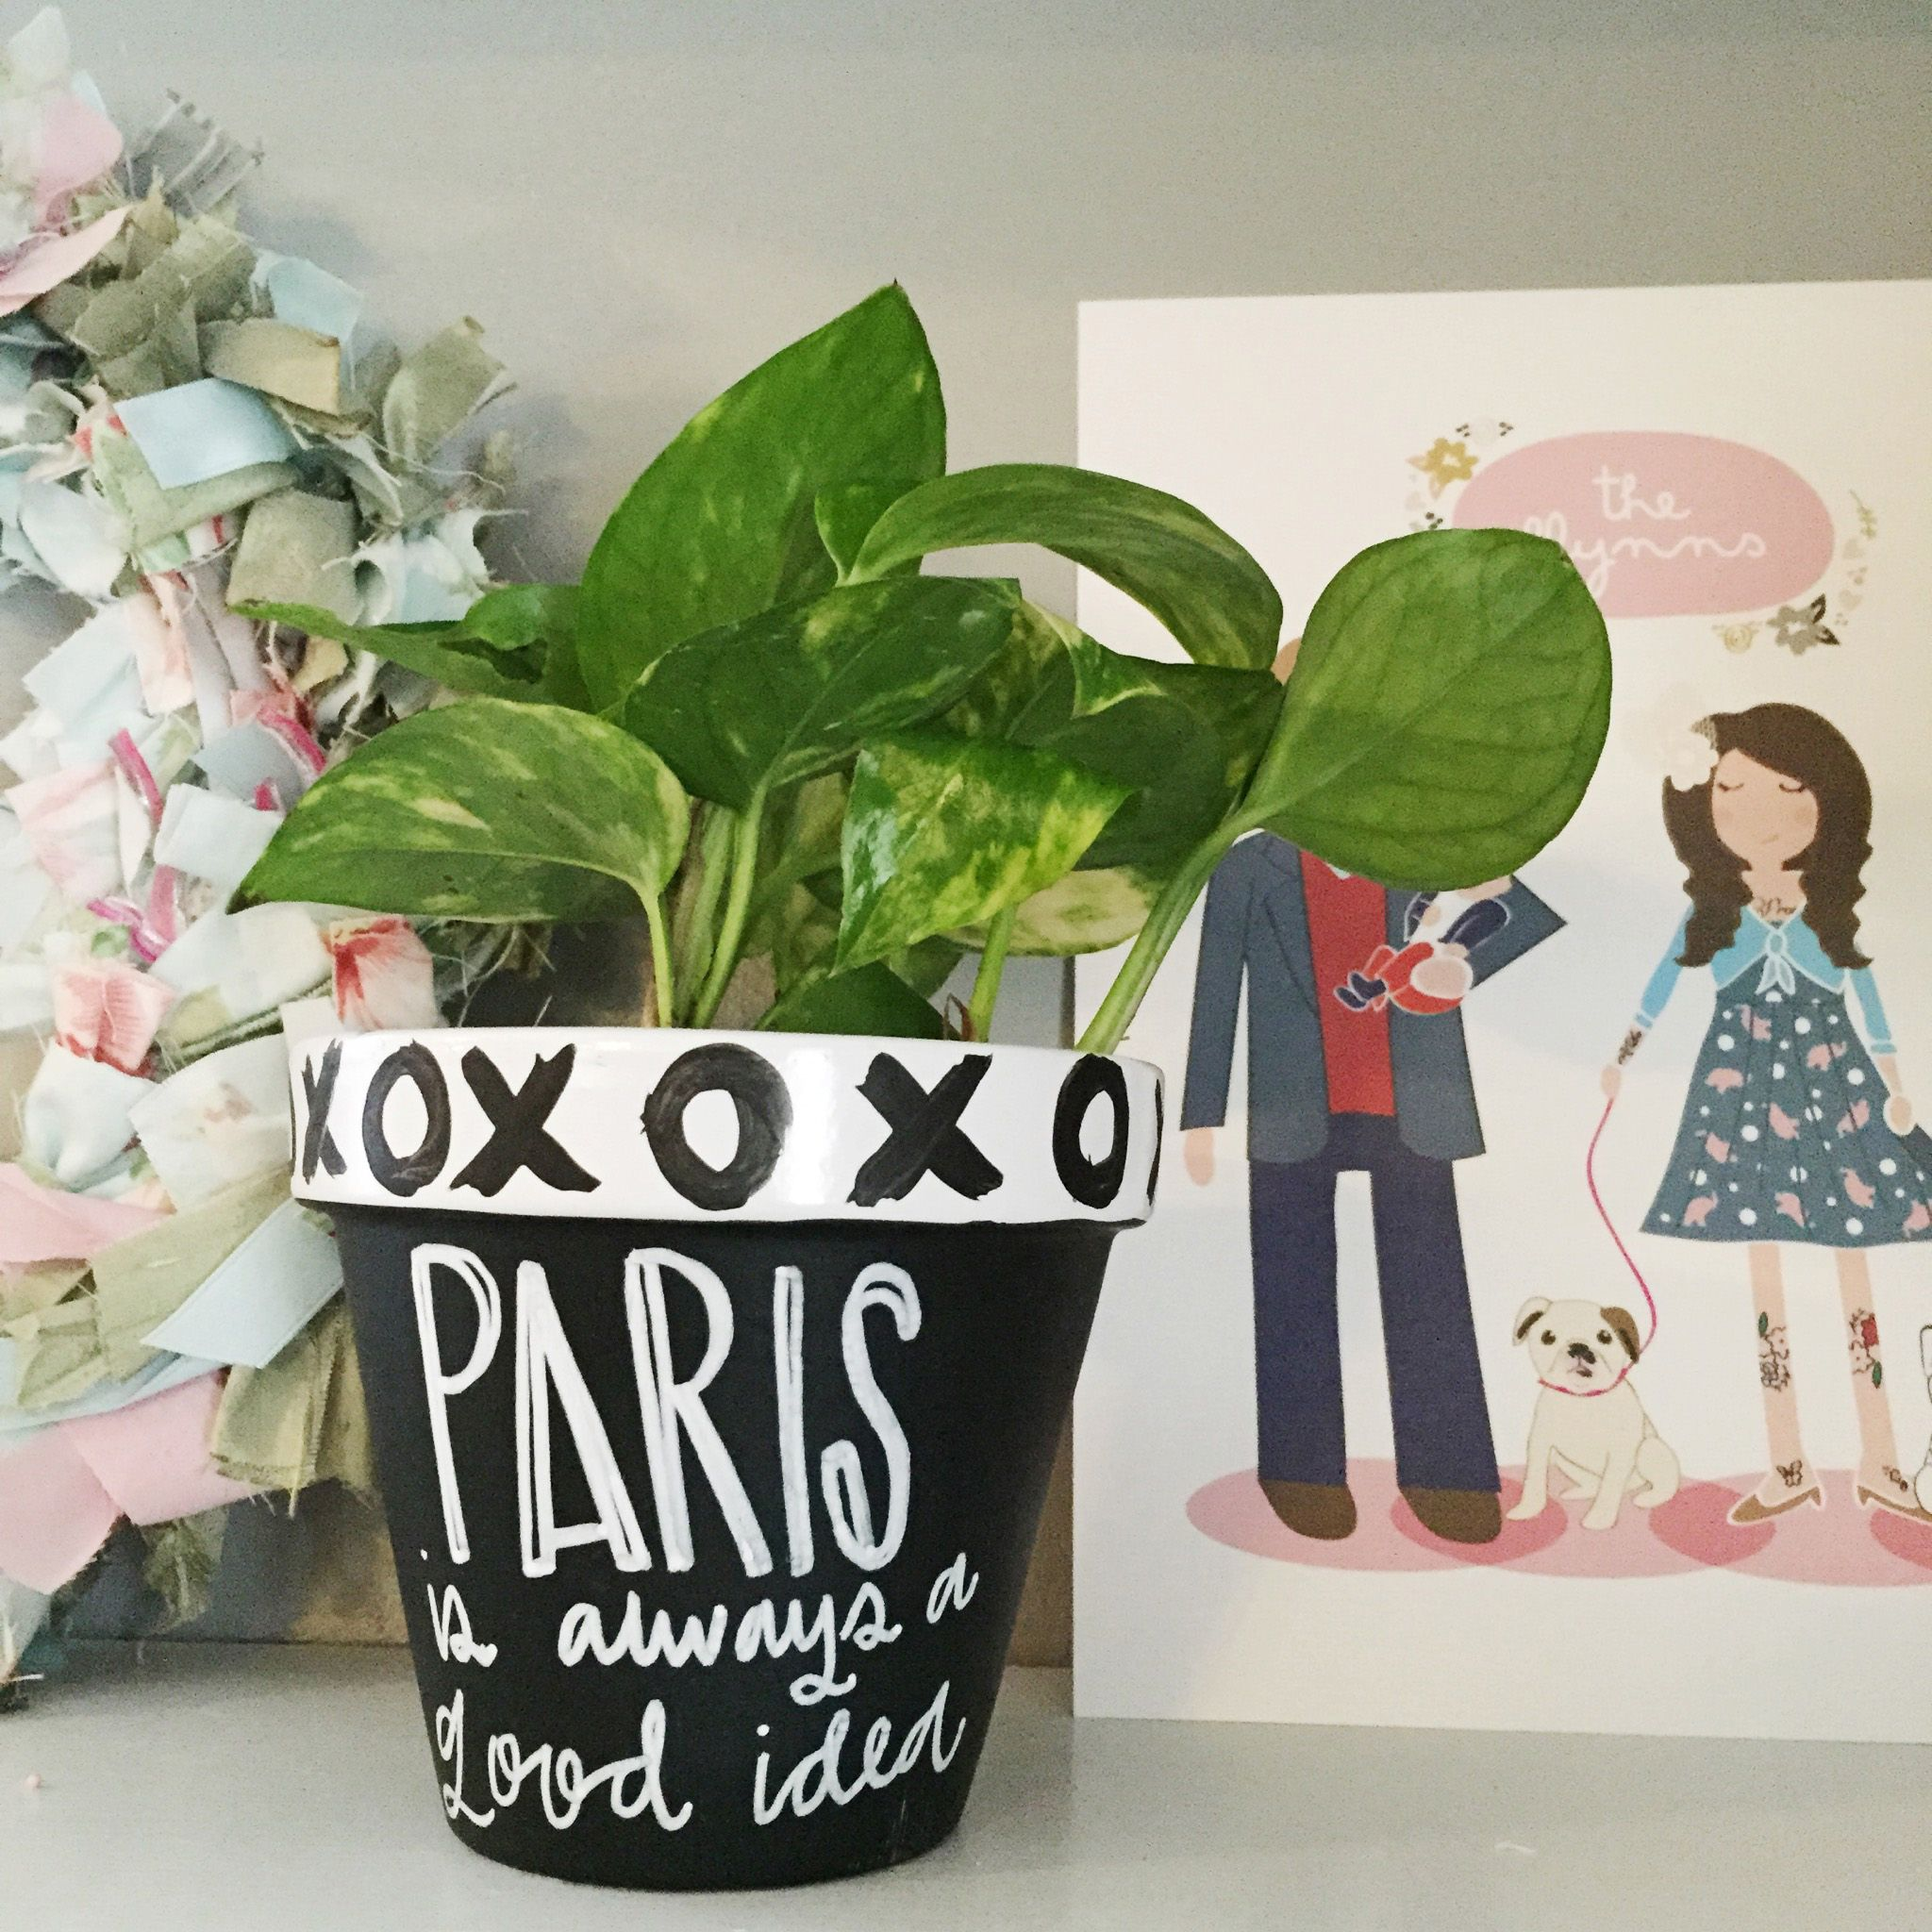 springtime in paris: diy easy painted decorative pots from